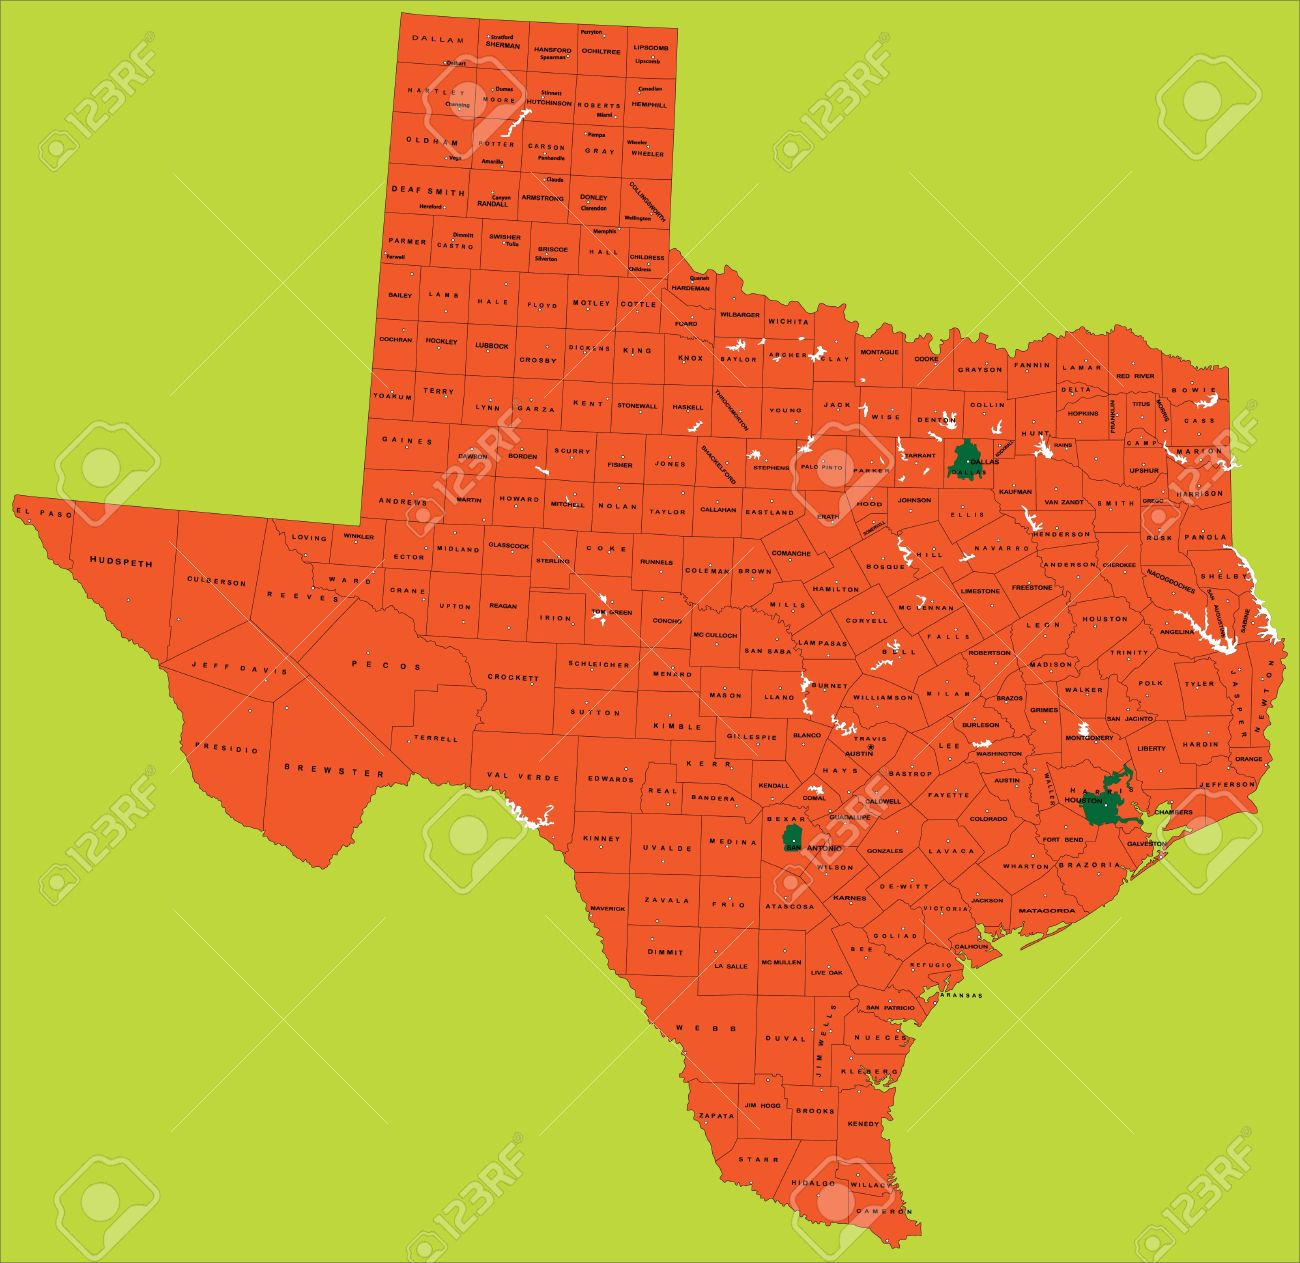 State of texas political map Stock Vector - 14167503